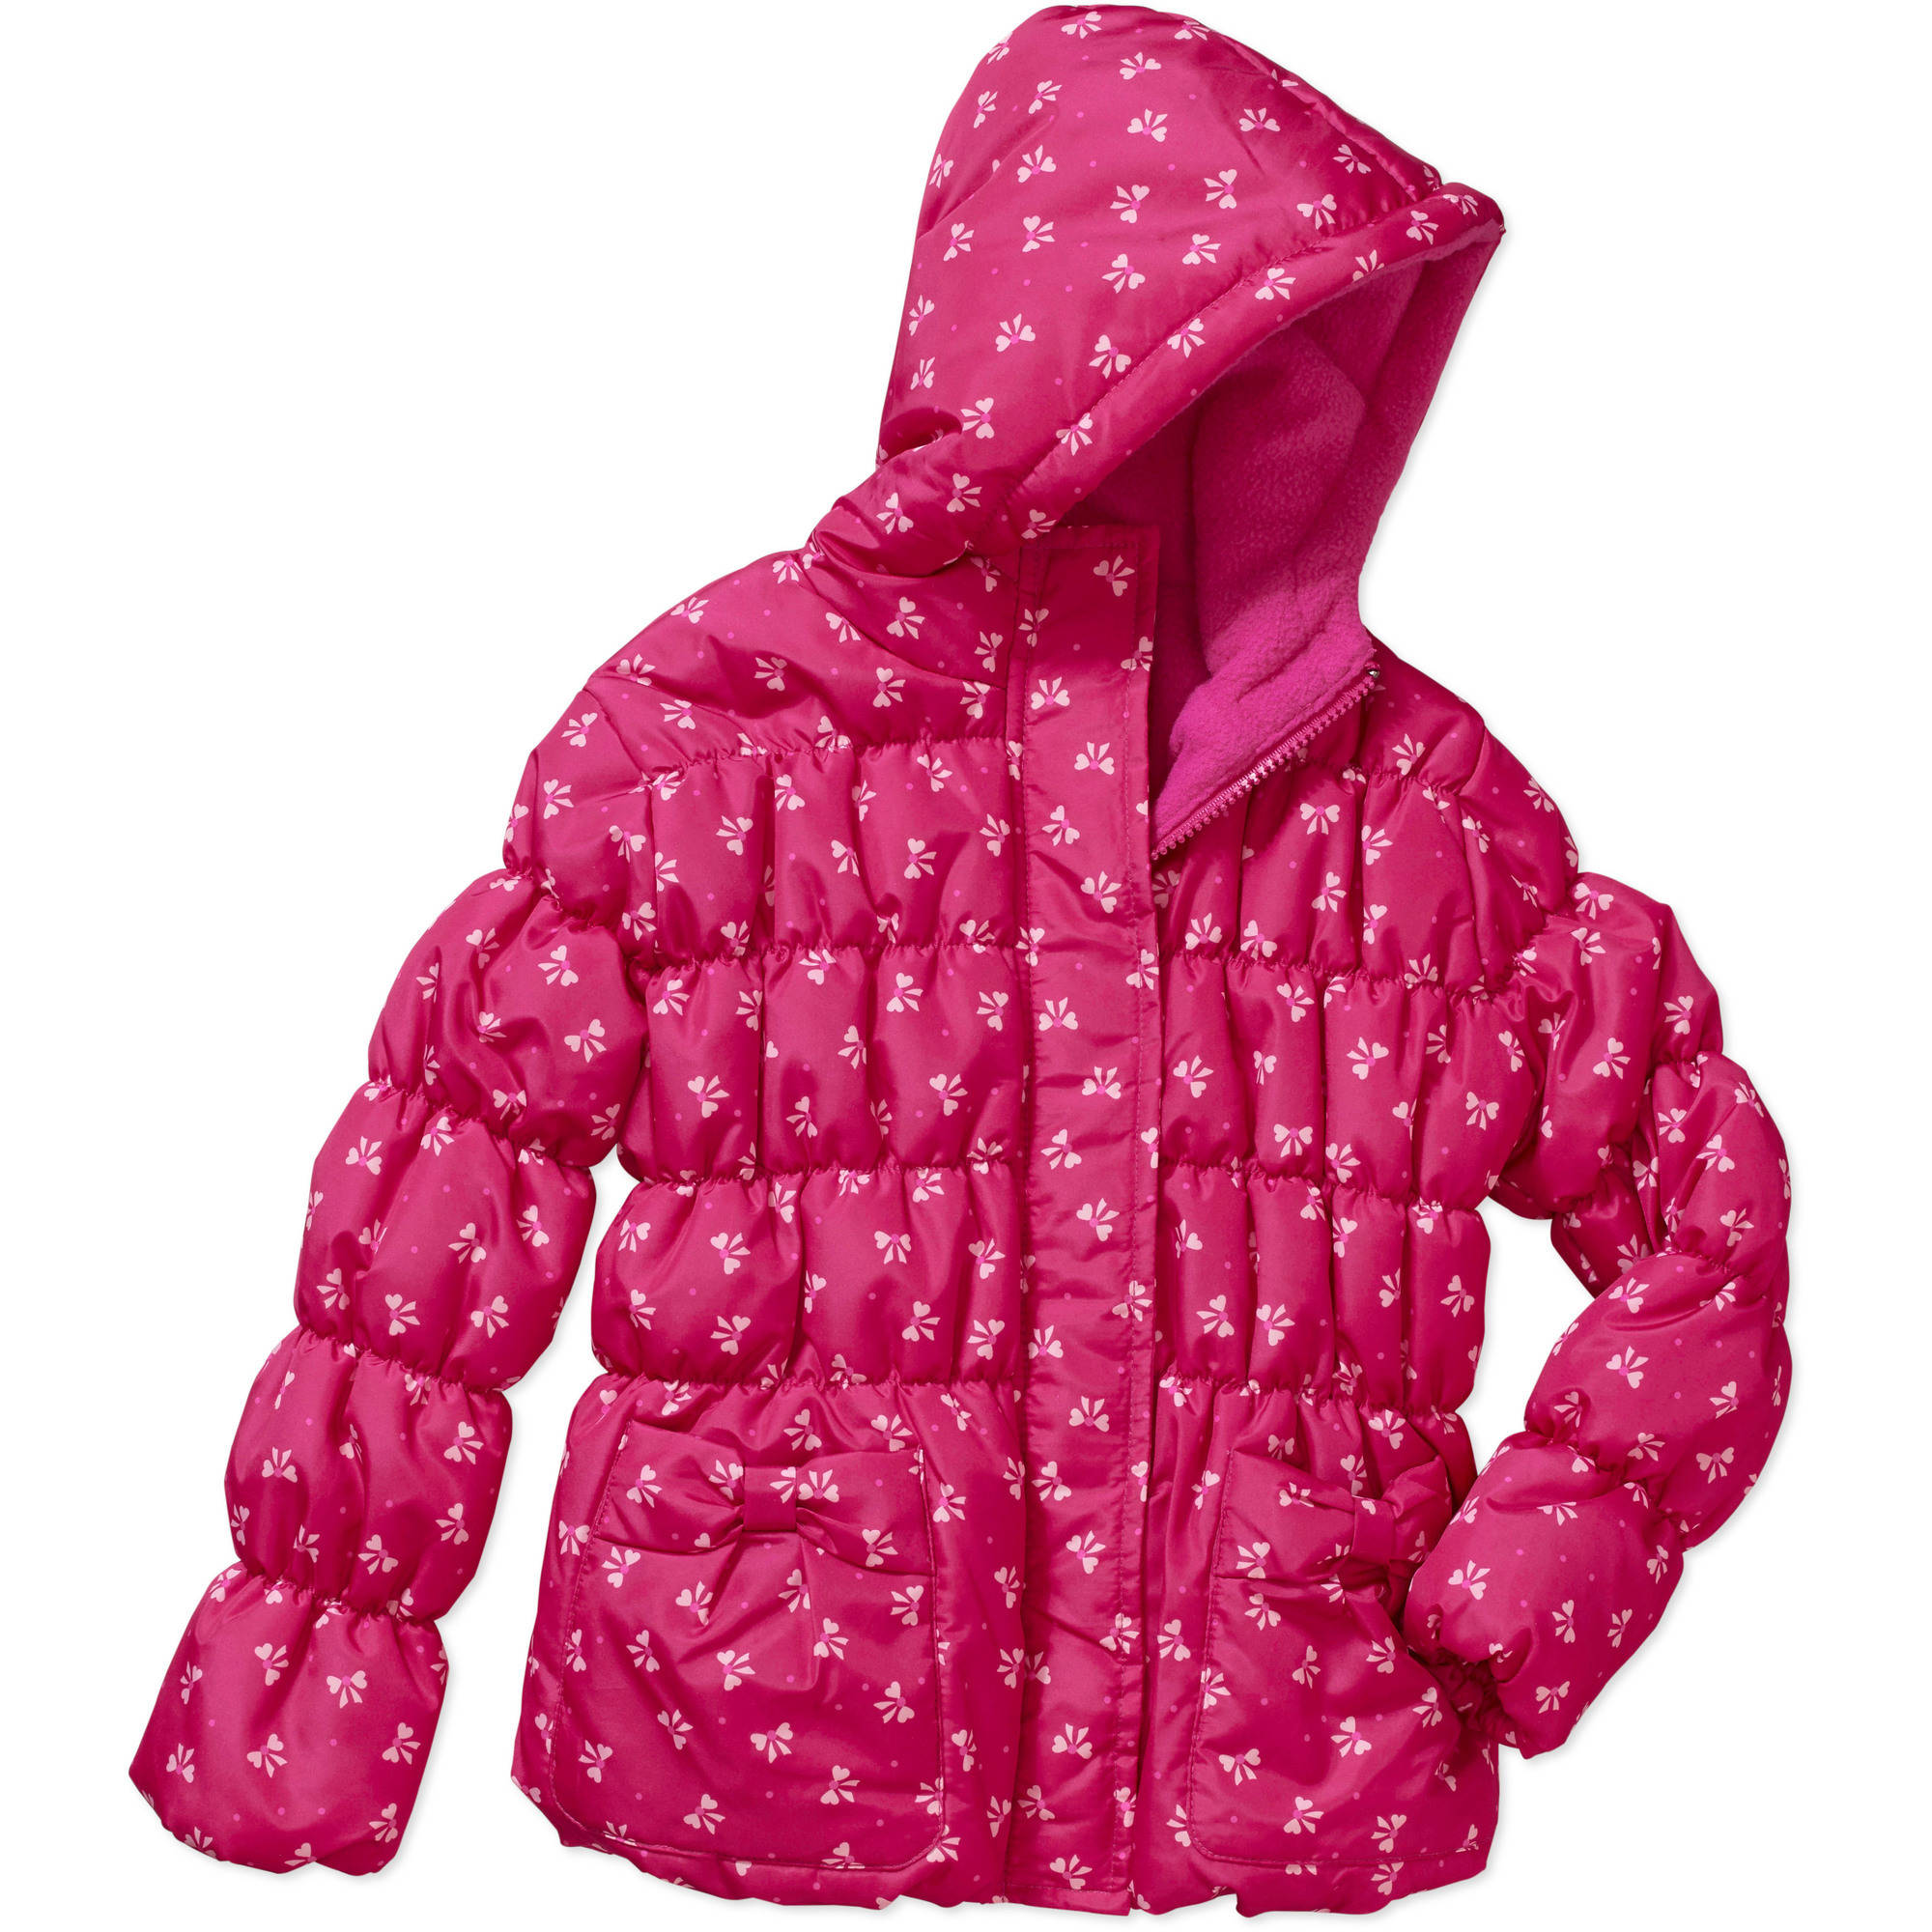 Climate Concepts Little Girls' Printed Bubble Jacket with Bow Pockets